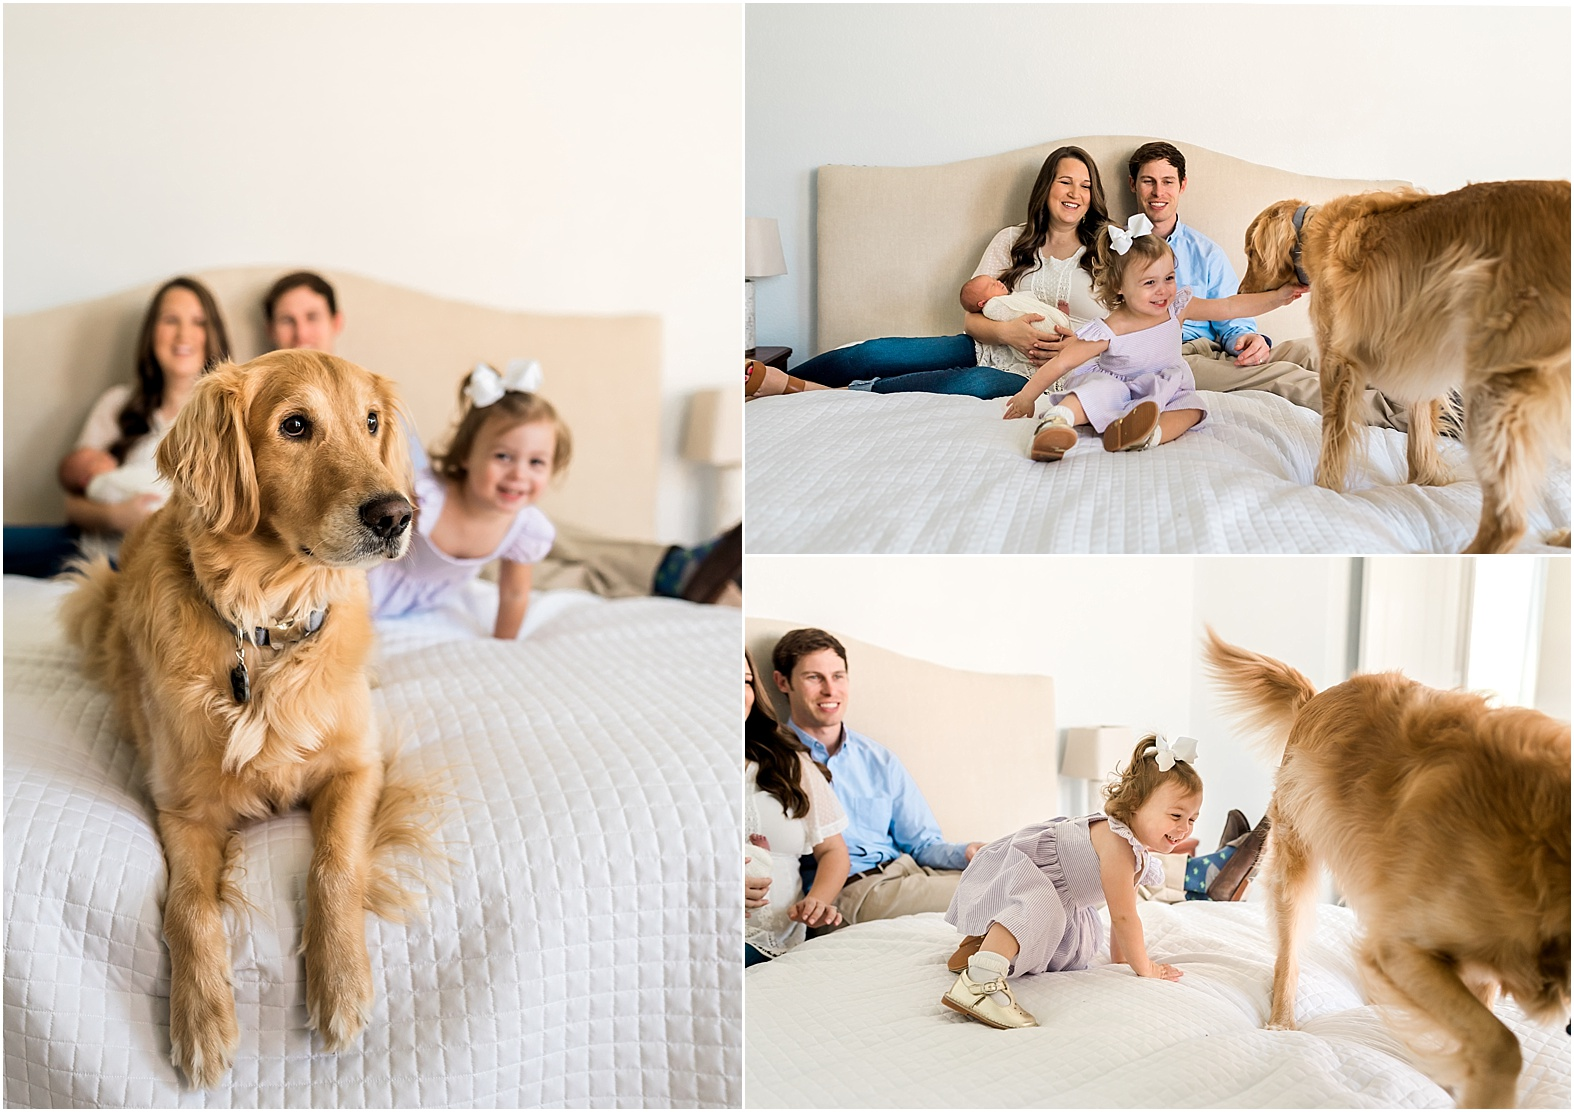 You now you've got the full family when the dog gets involved! This Katy, TX in home Newborn Lifestyle Session was full of fun, and a little mischief too featuring the furbaby of the house and brand new baby girl. | Houston, TX Newborn Lifestyle Photographer